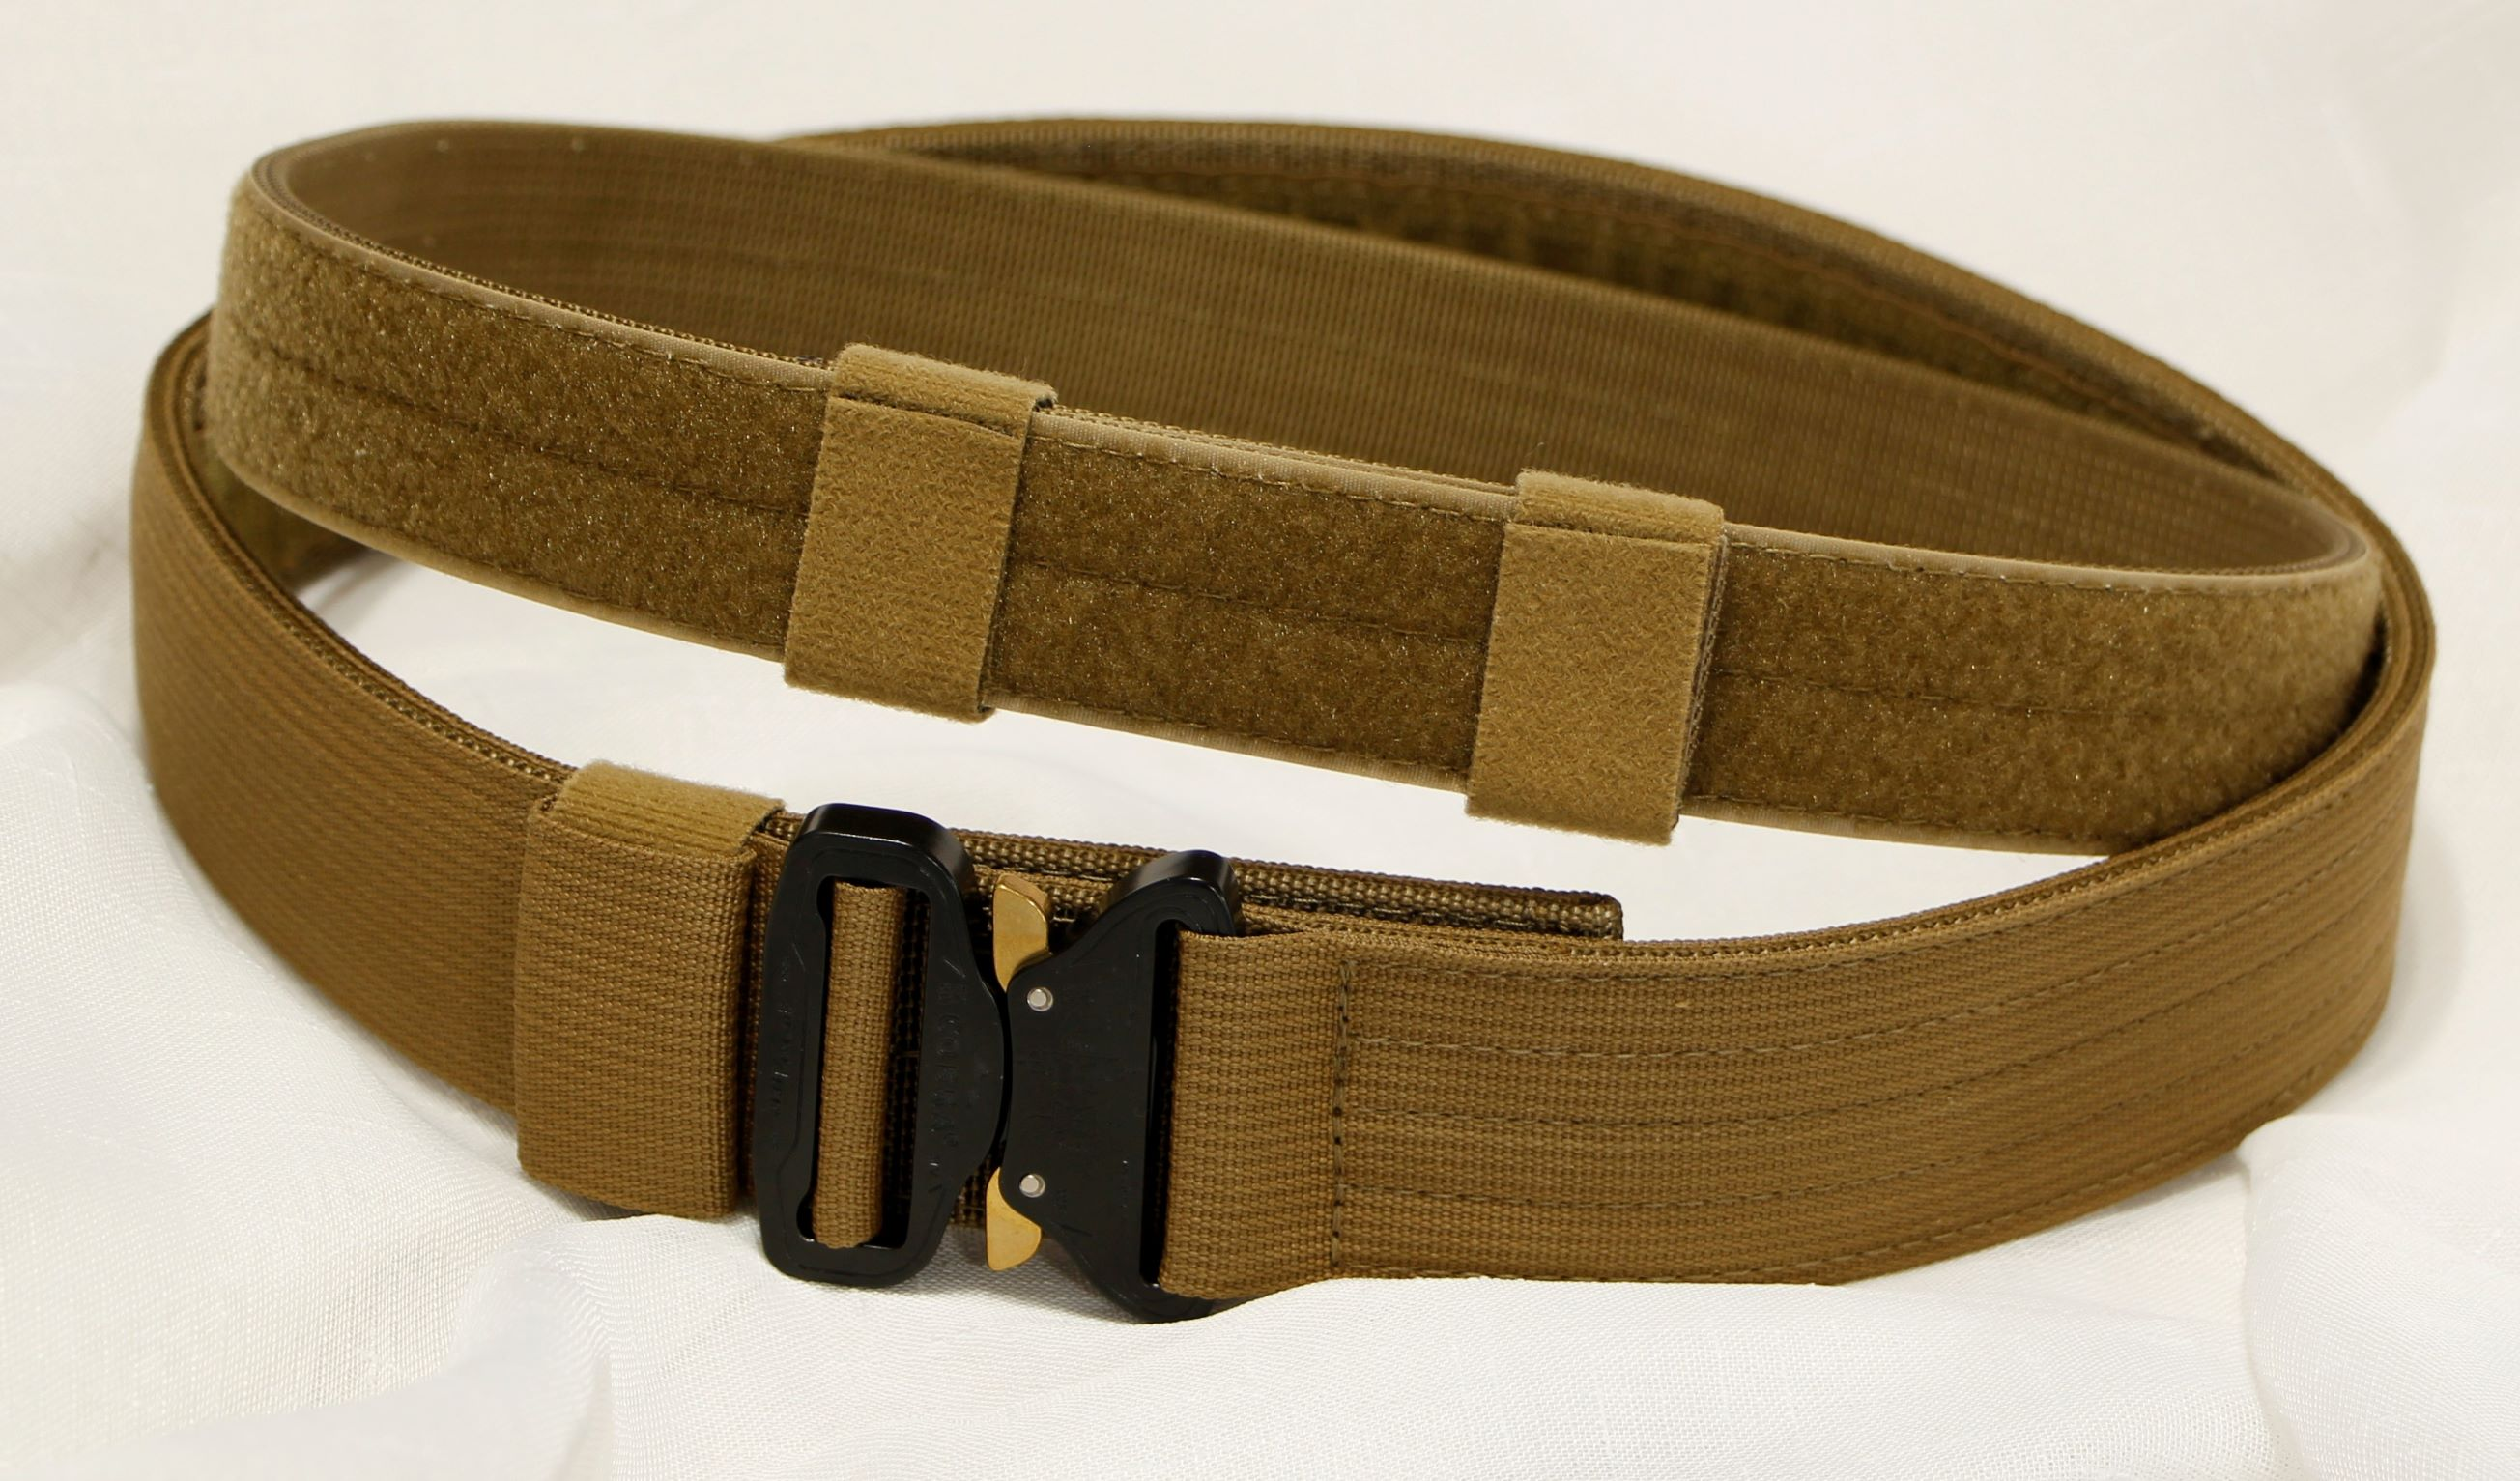 LE Duty Belt, INNER, Coyote, LG